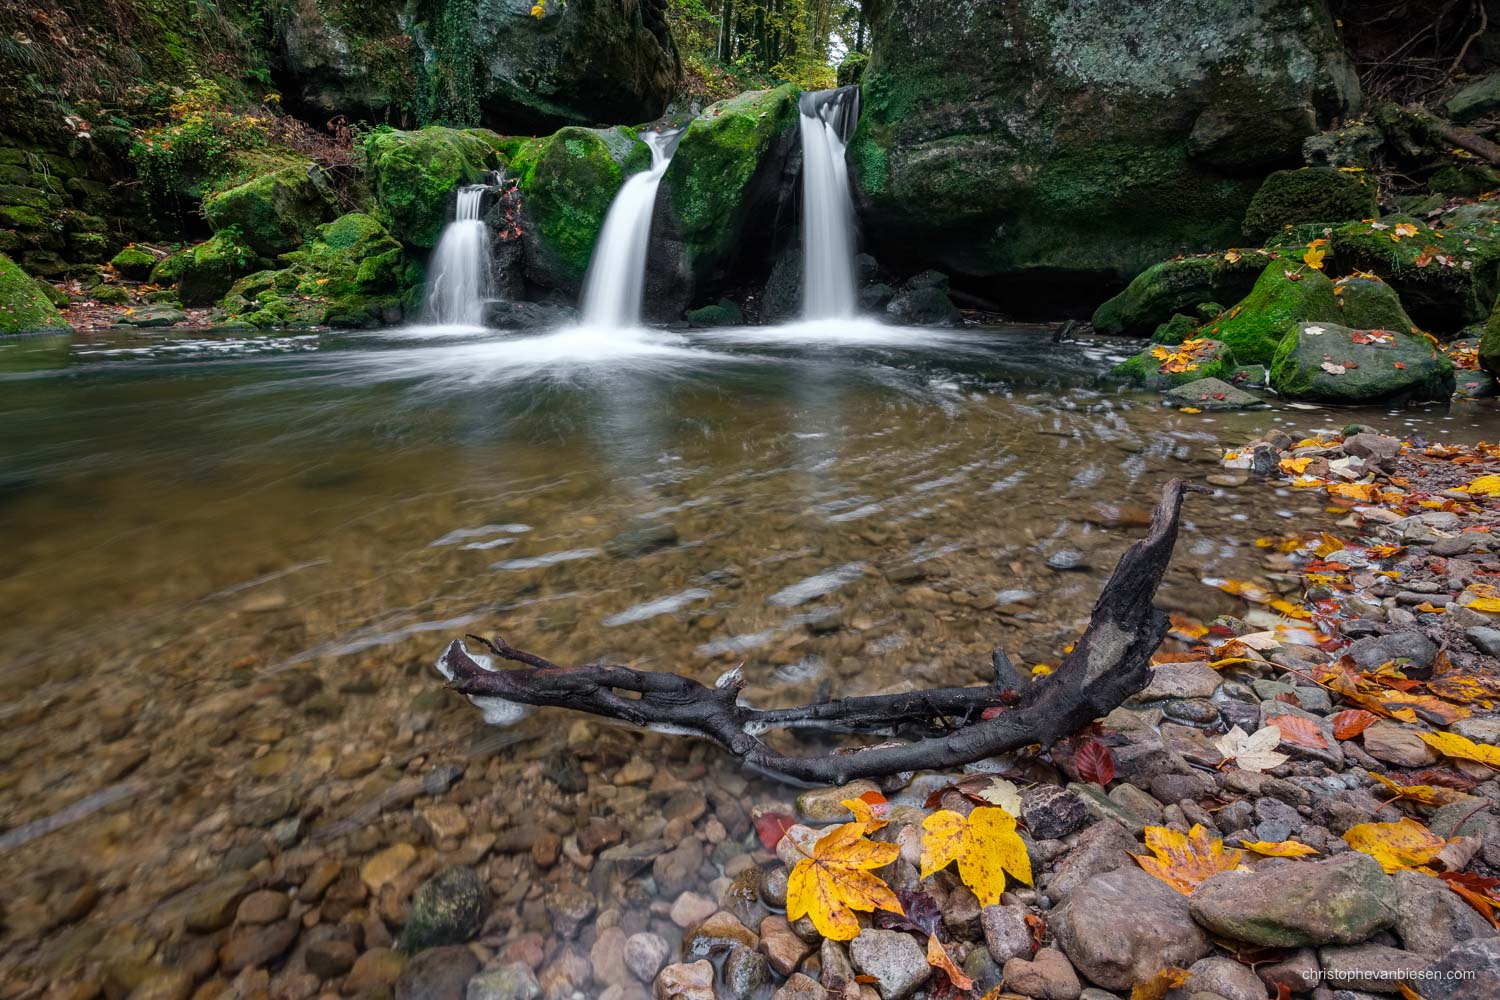 Luxembourg - Fall at the Mullerthal's most famous waterfall - Autumn at the Schiessentumpel